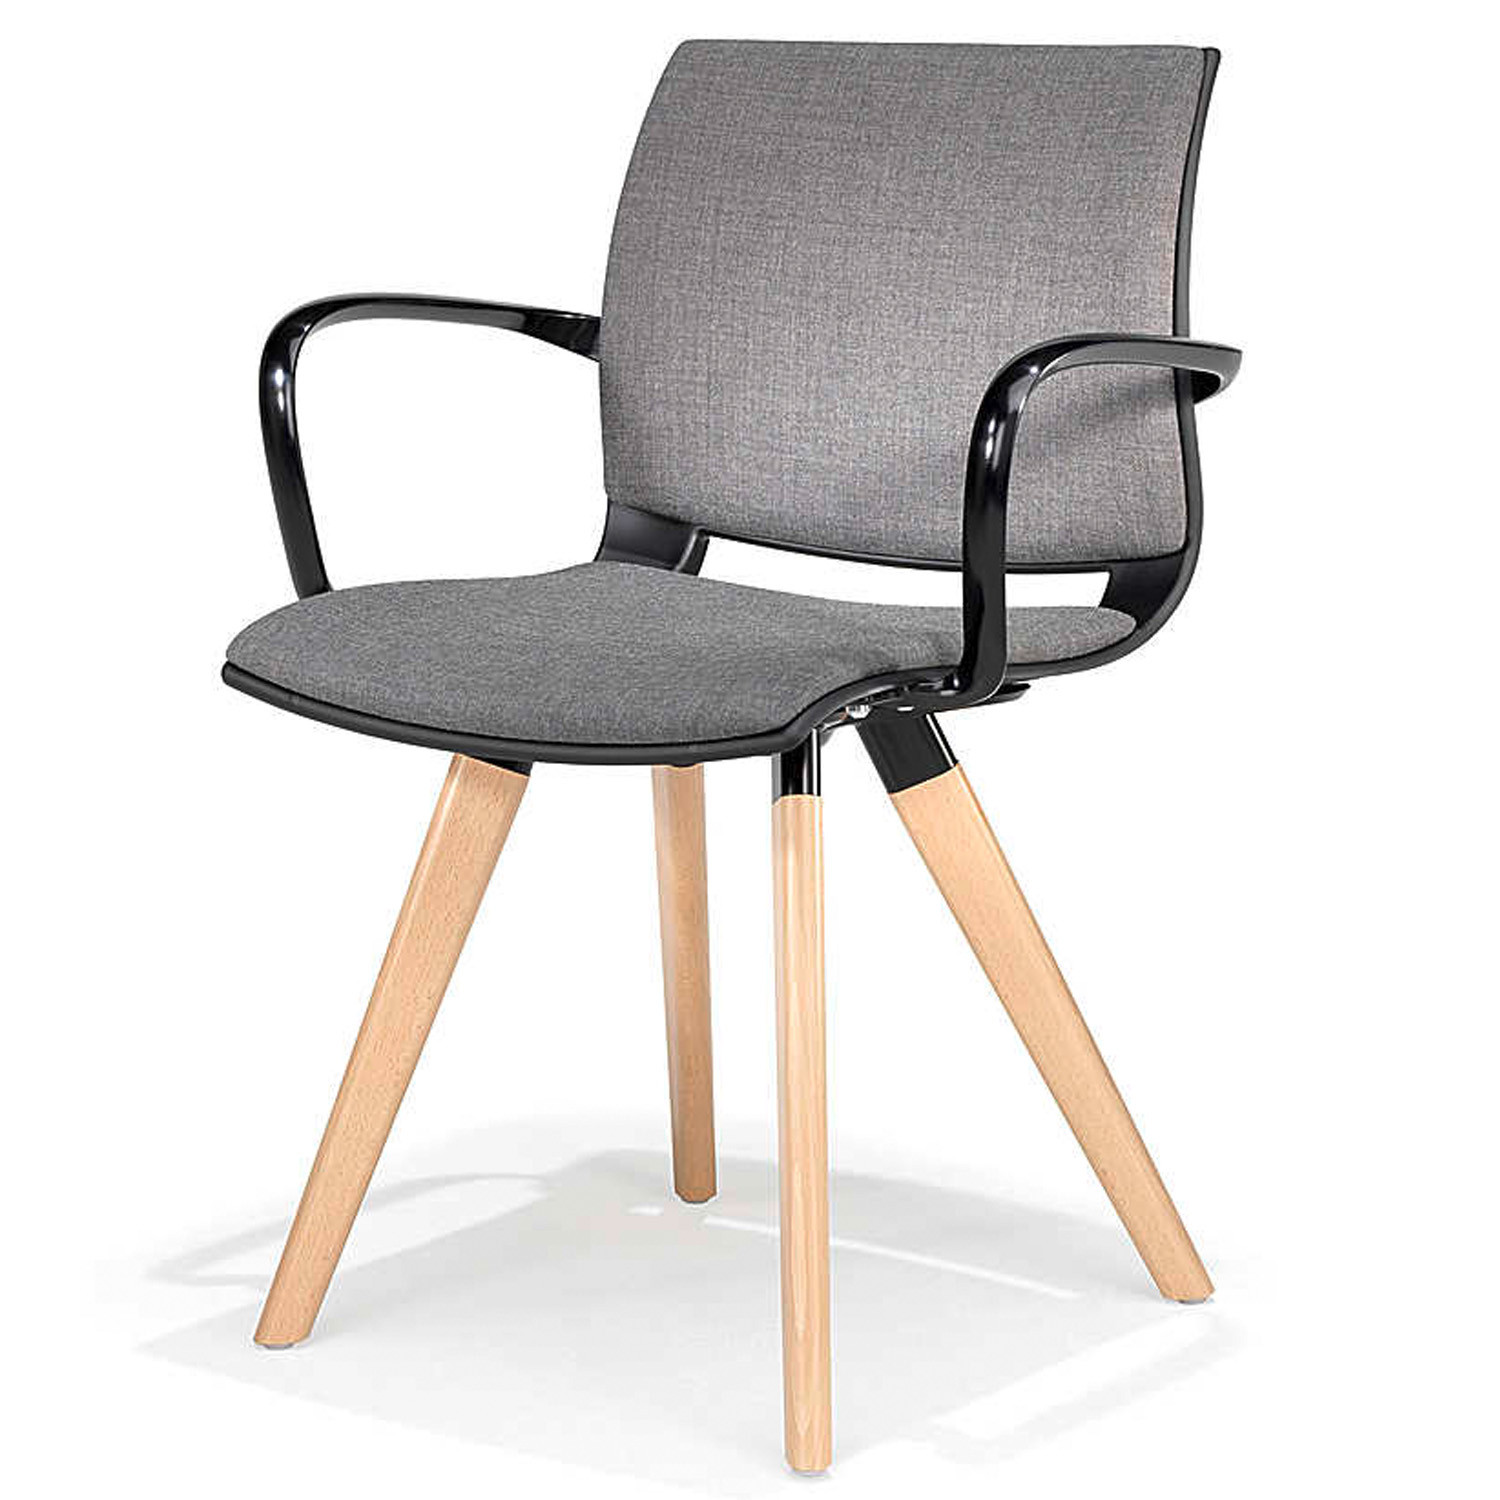 2080 Uni_Verso Armchair with padded seat and back